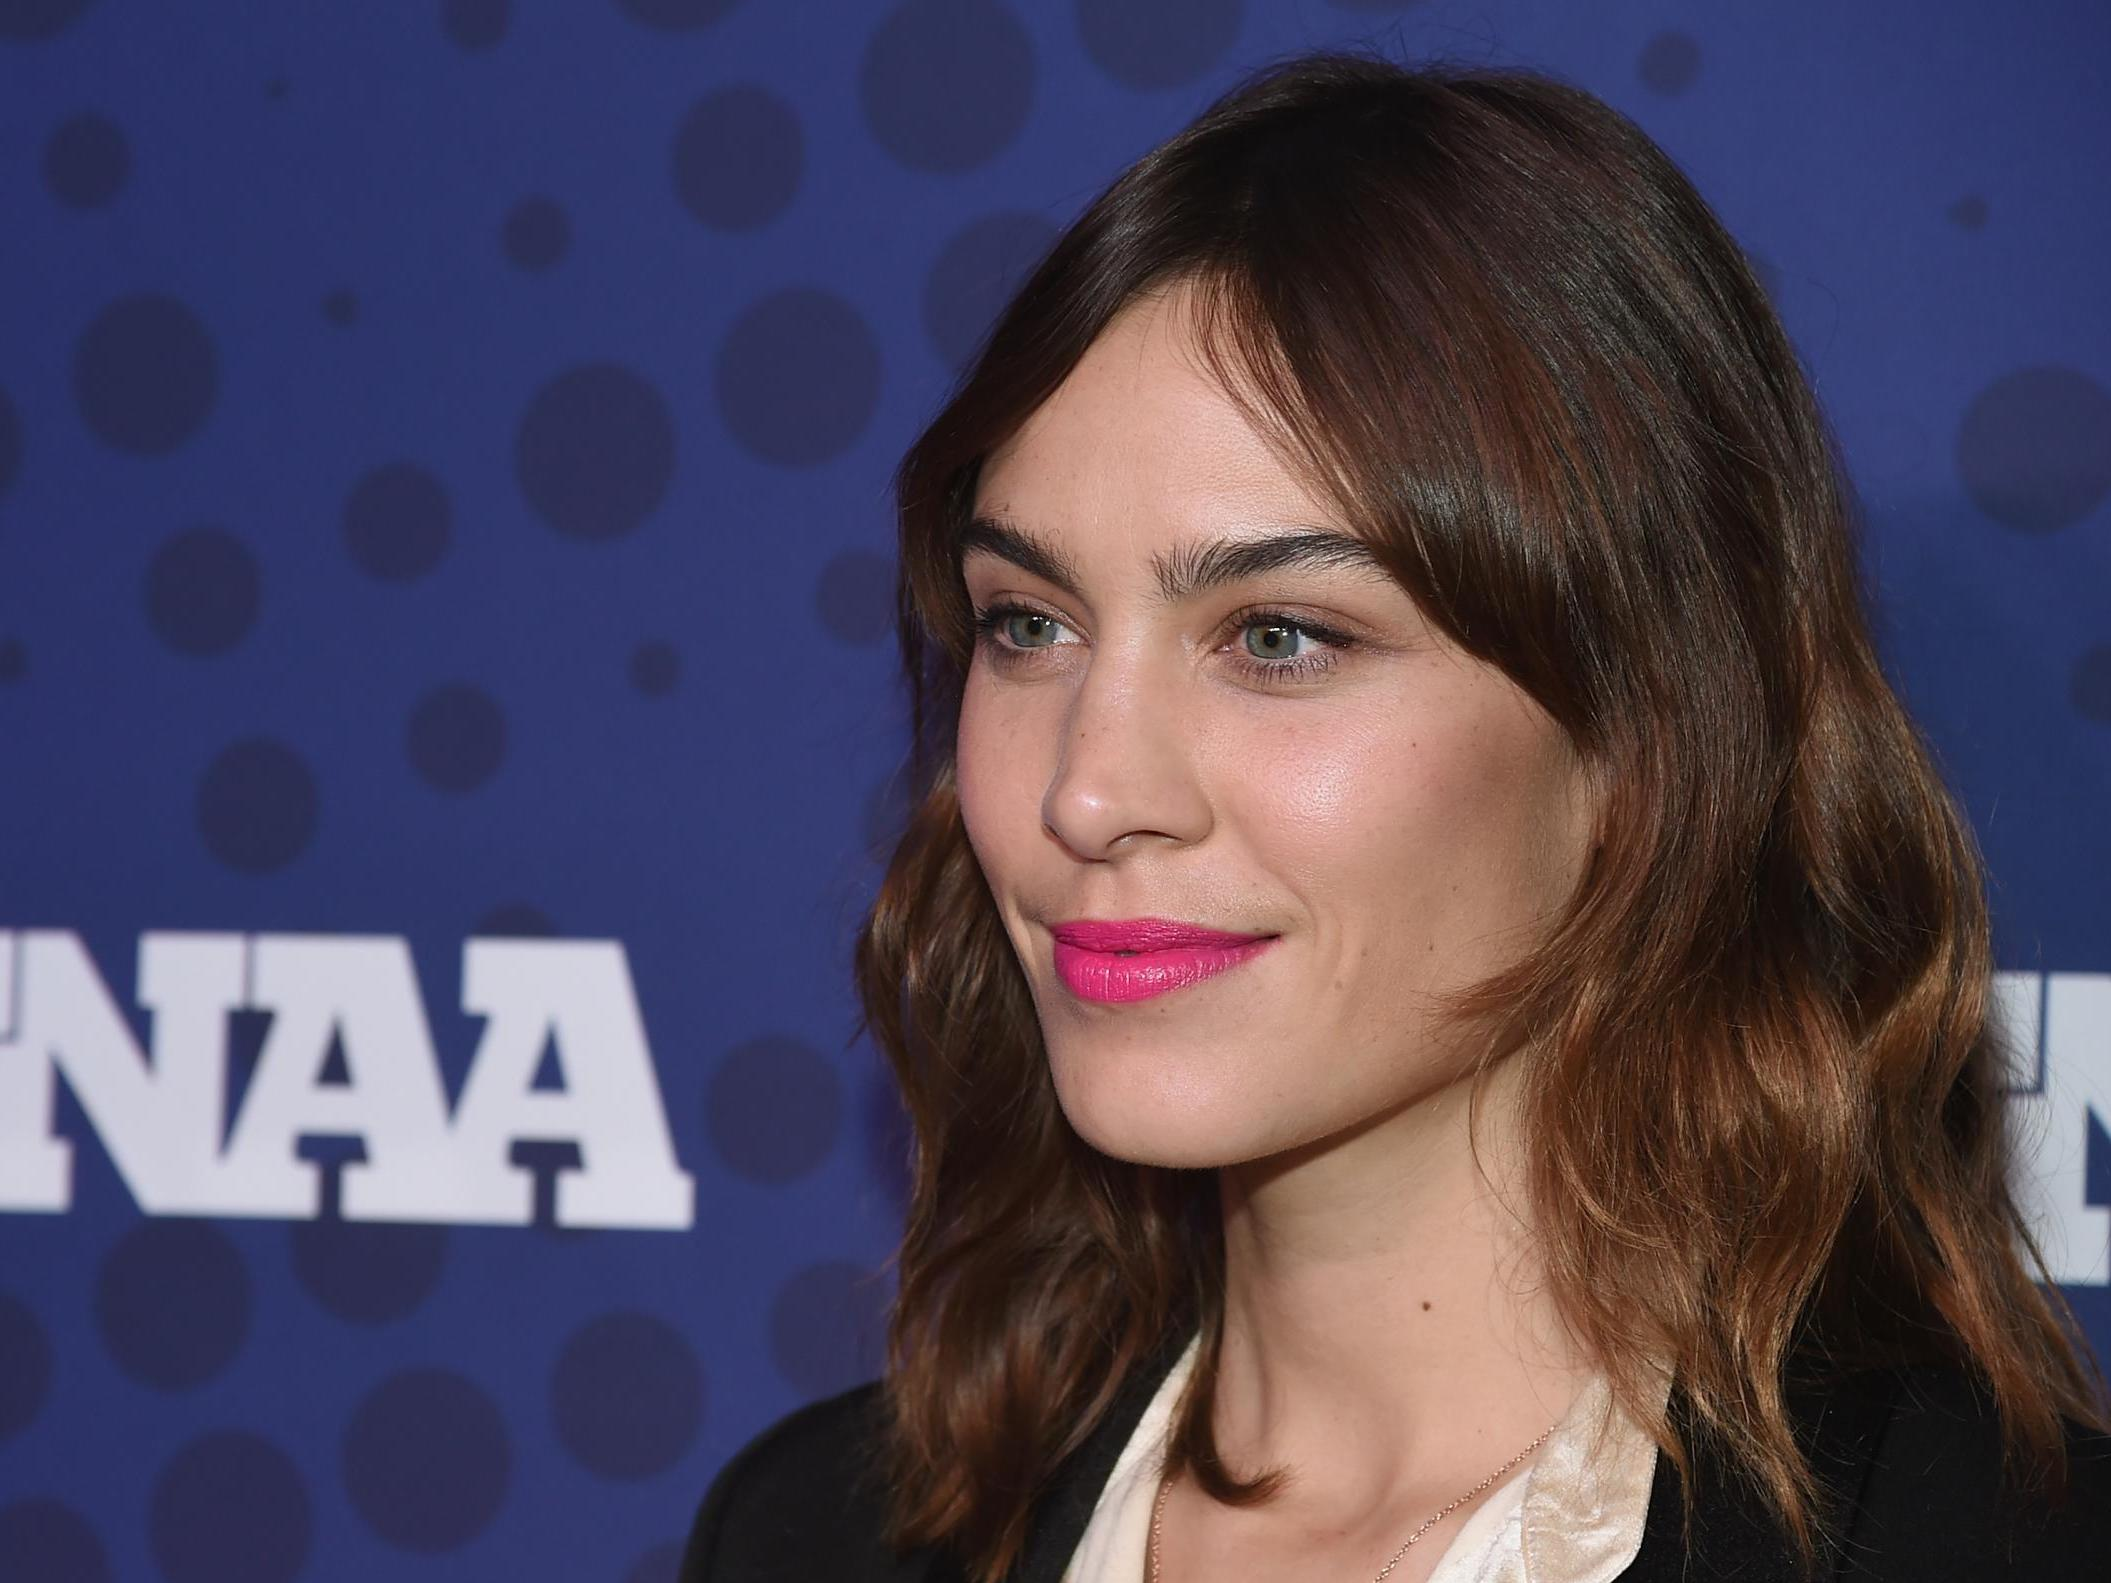 Alexa Chung announces first ever sunglasses collection